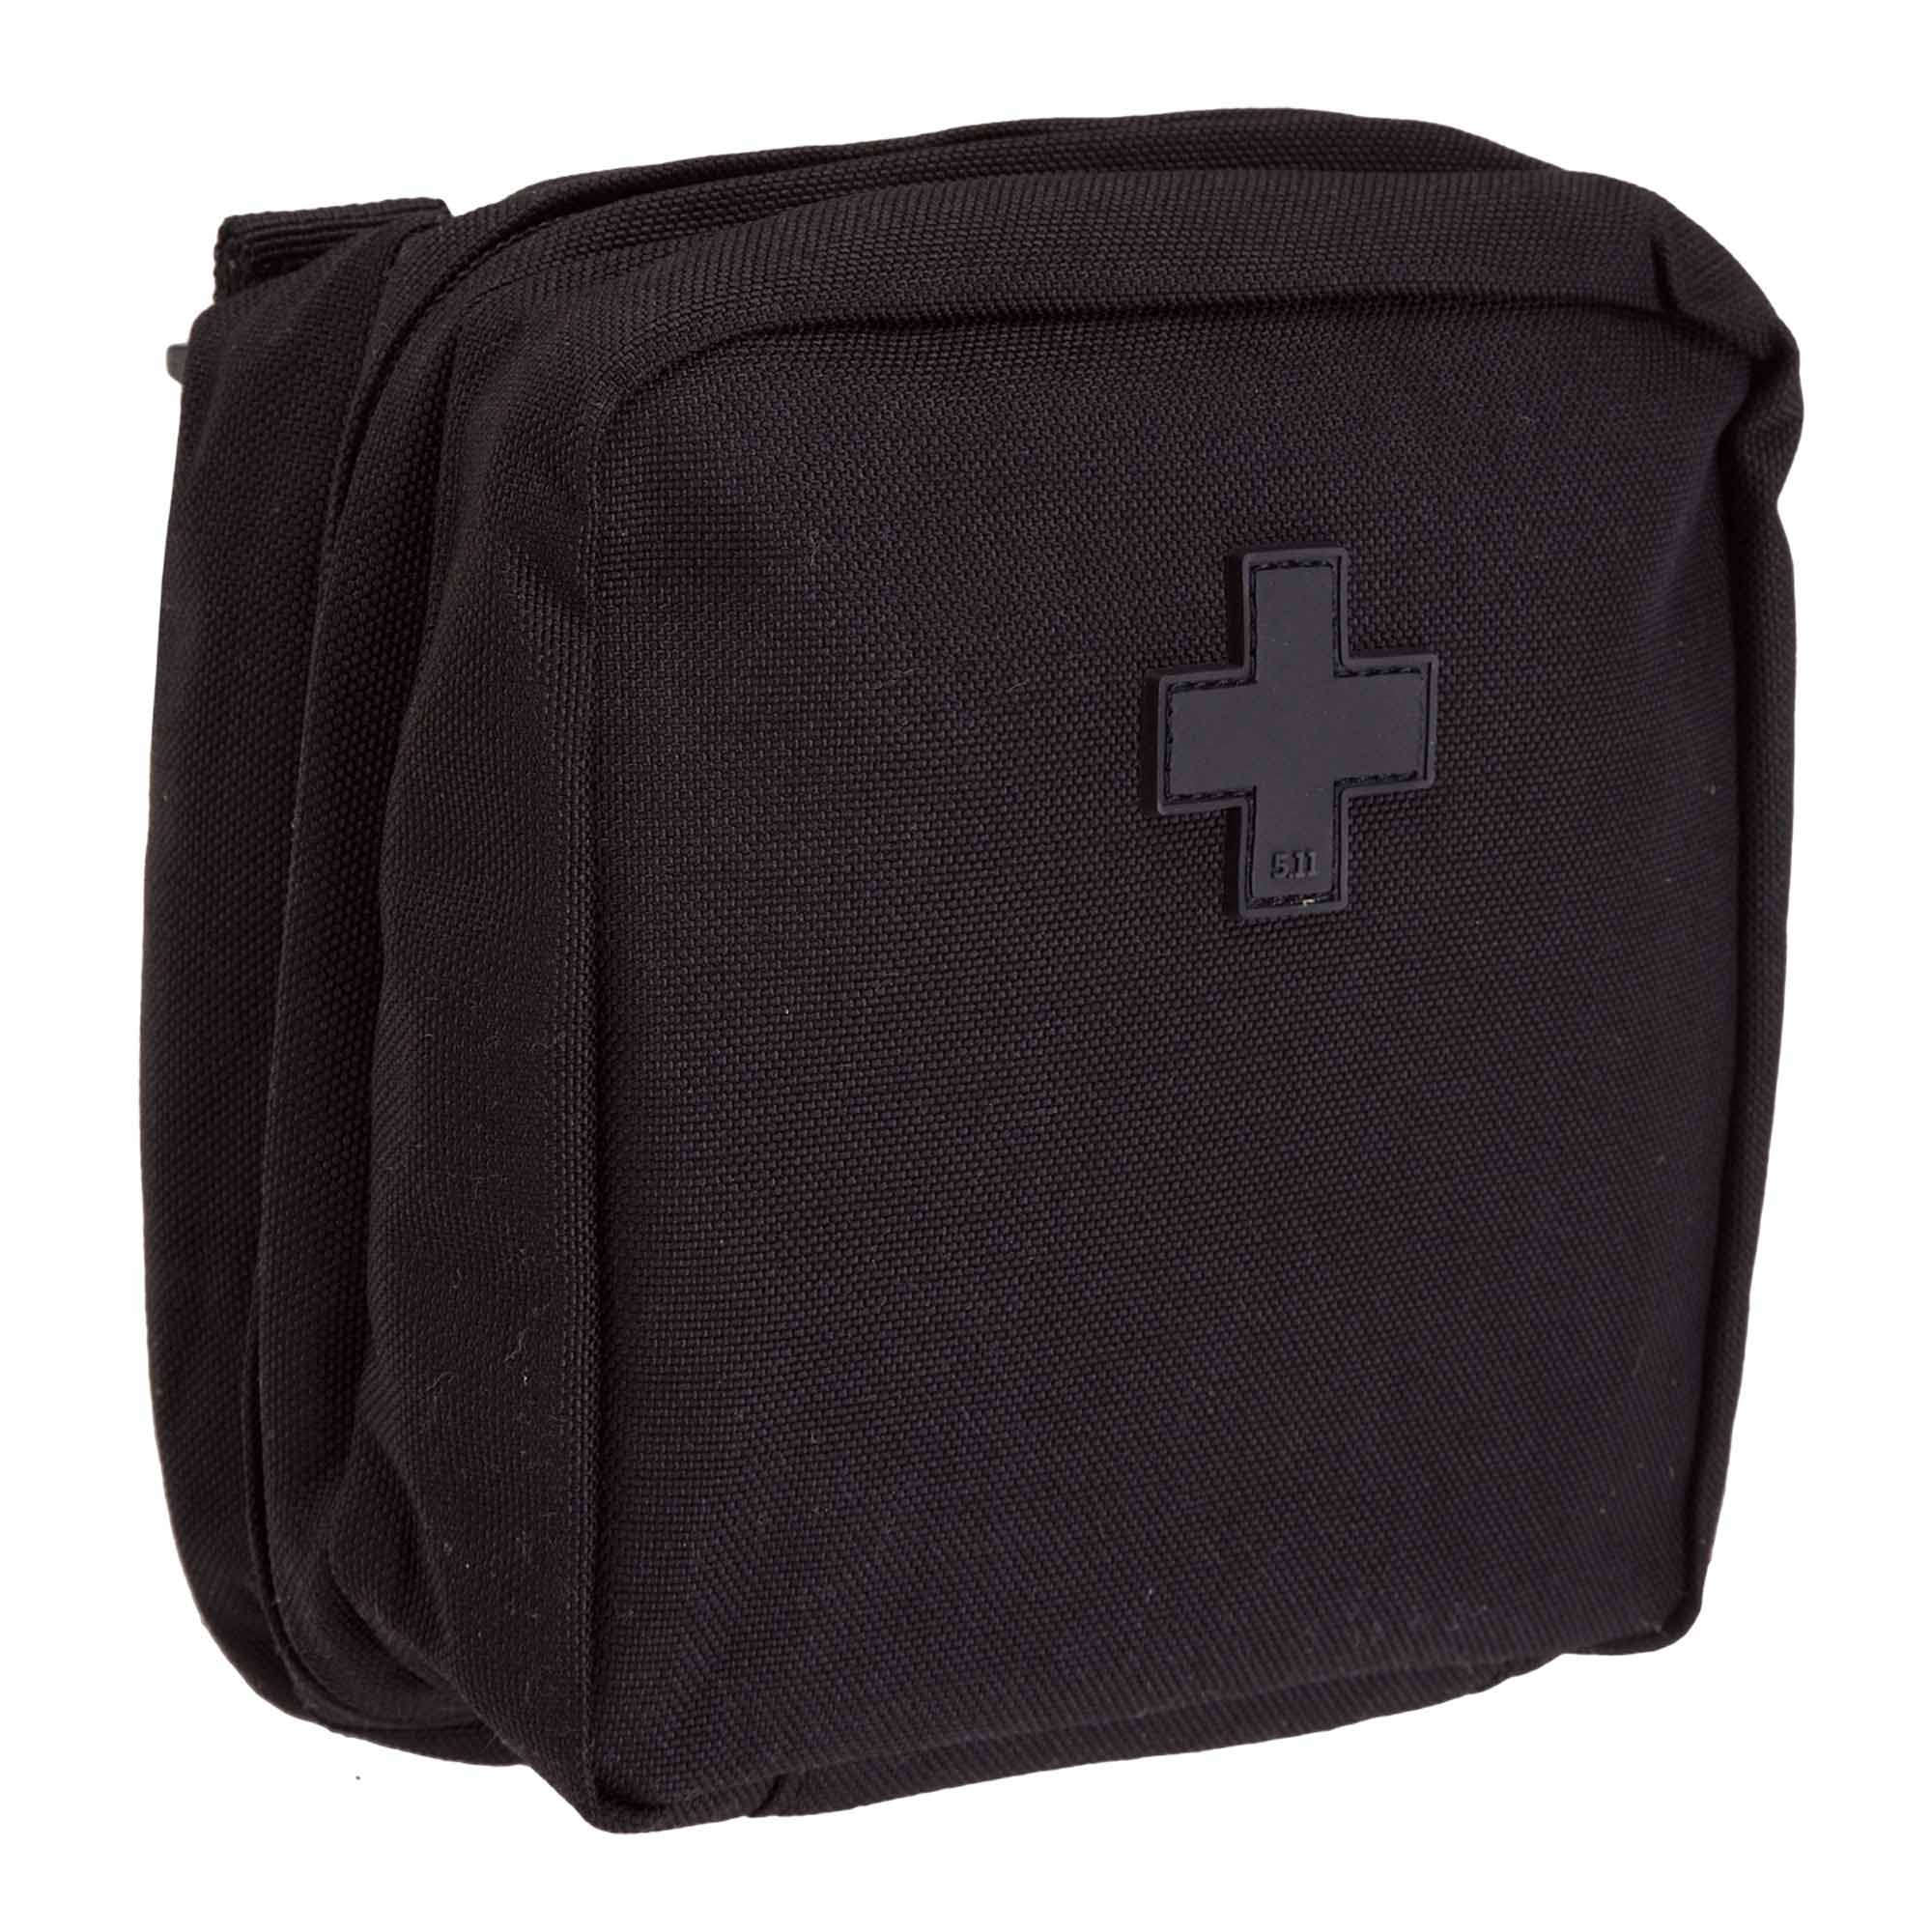 5.11 Tactical Medical Pouch 6 x 6